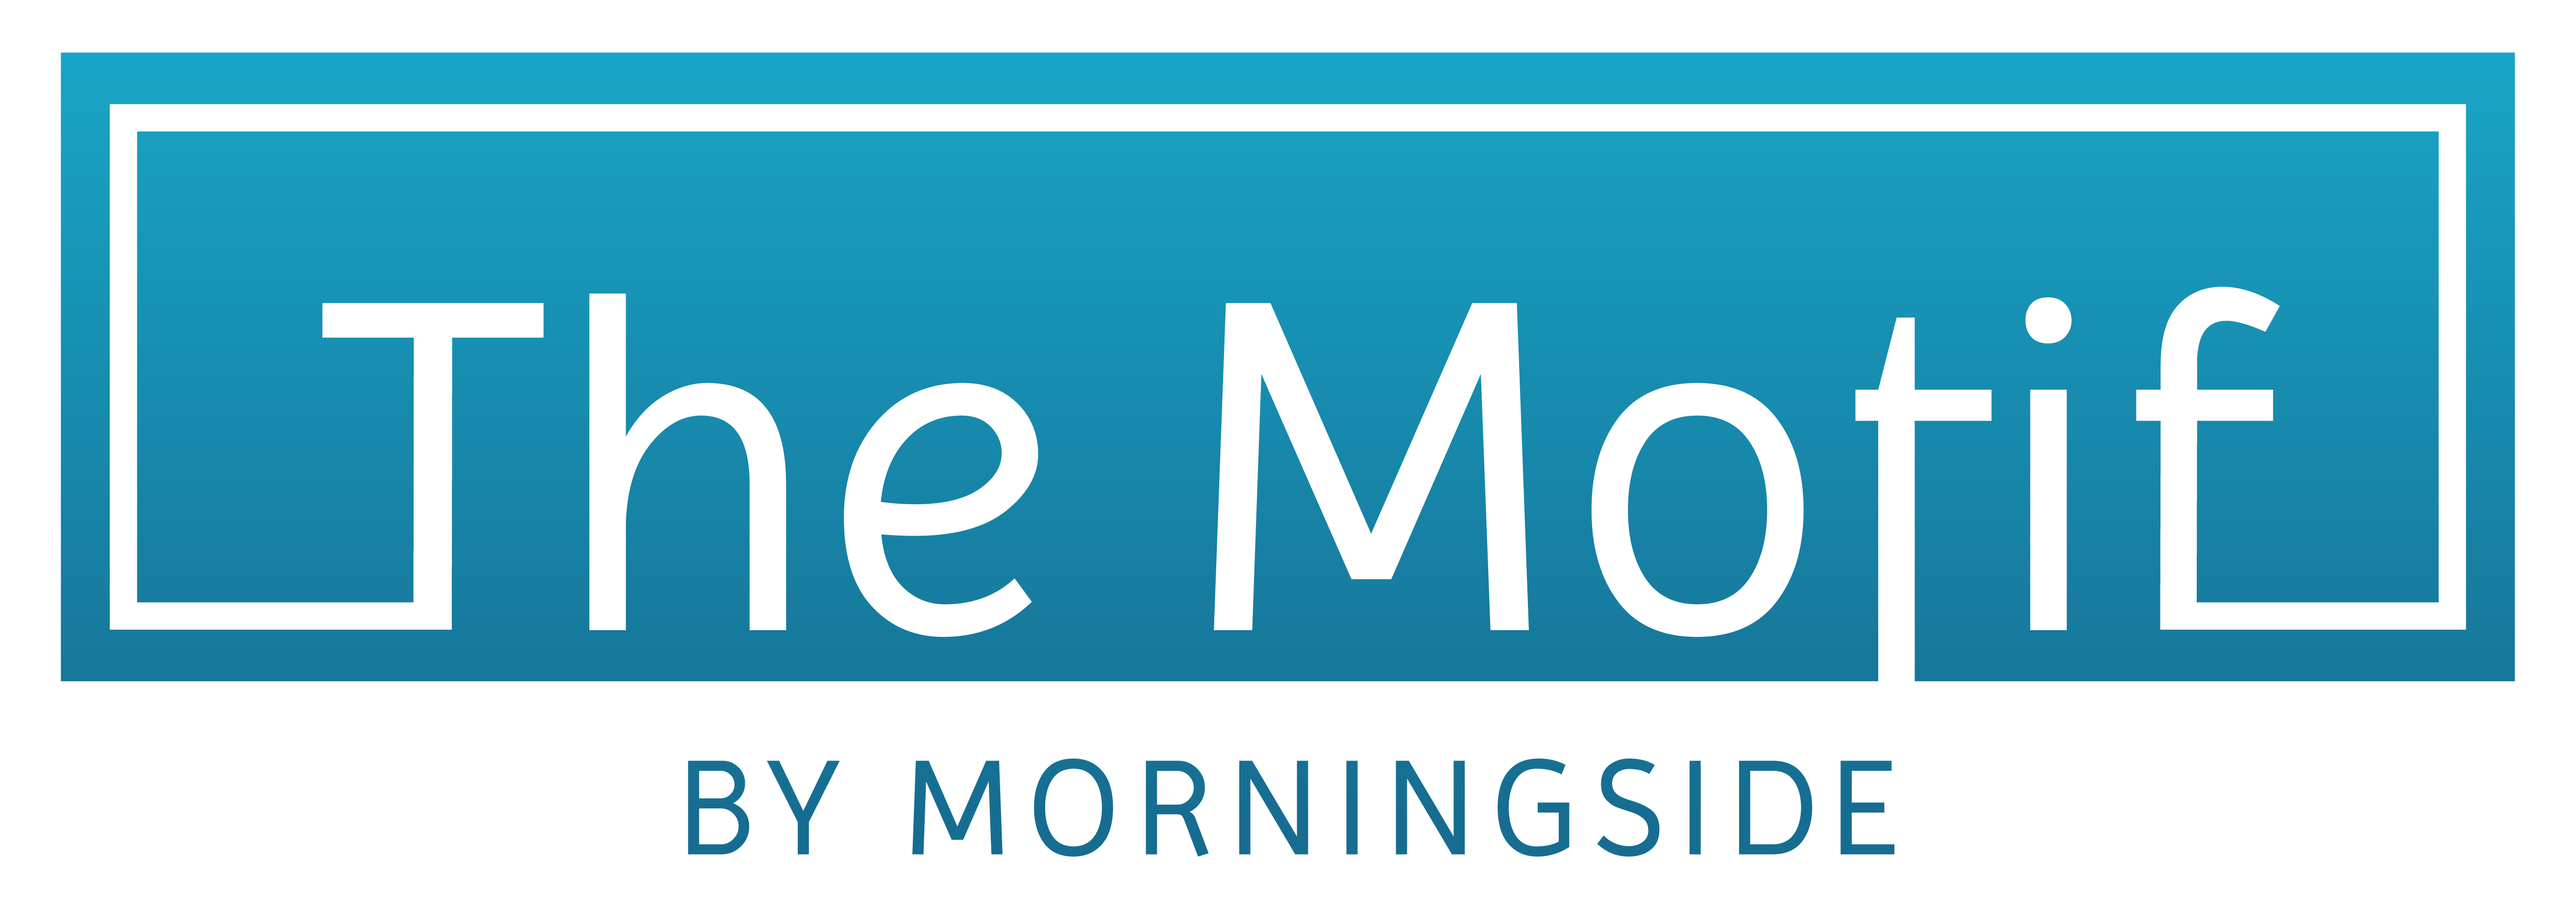 The Motif by Morningside logo